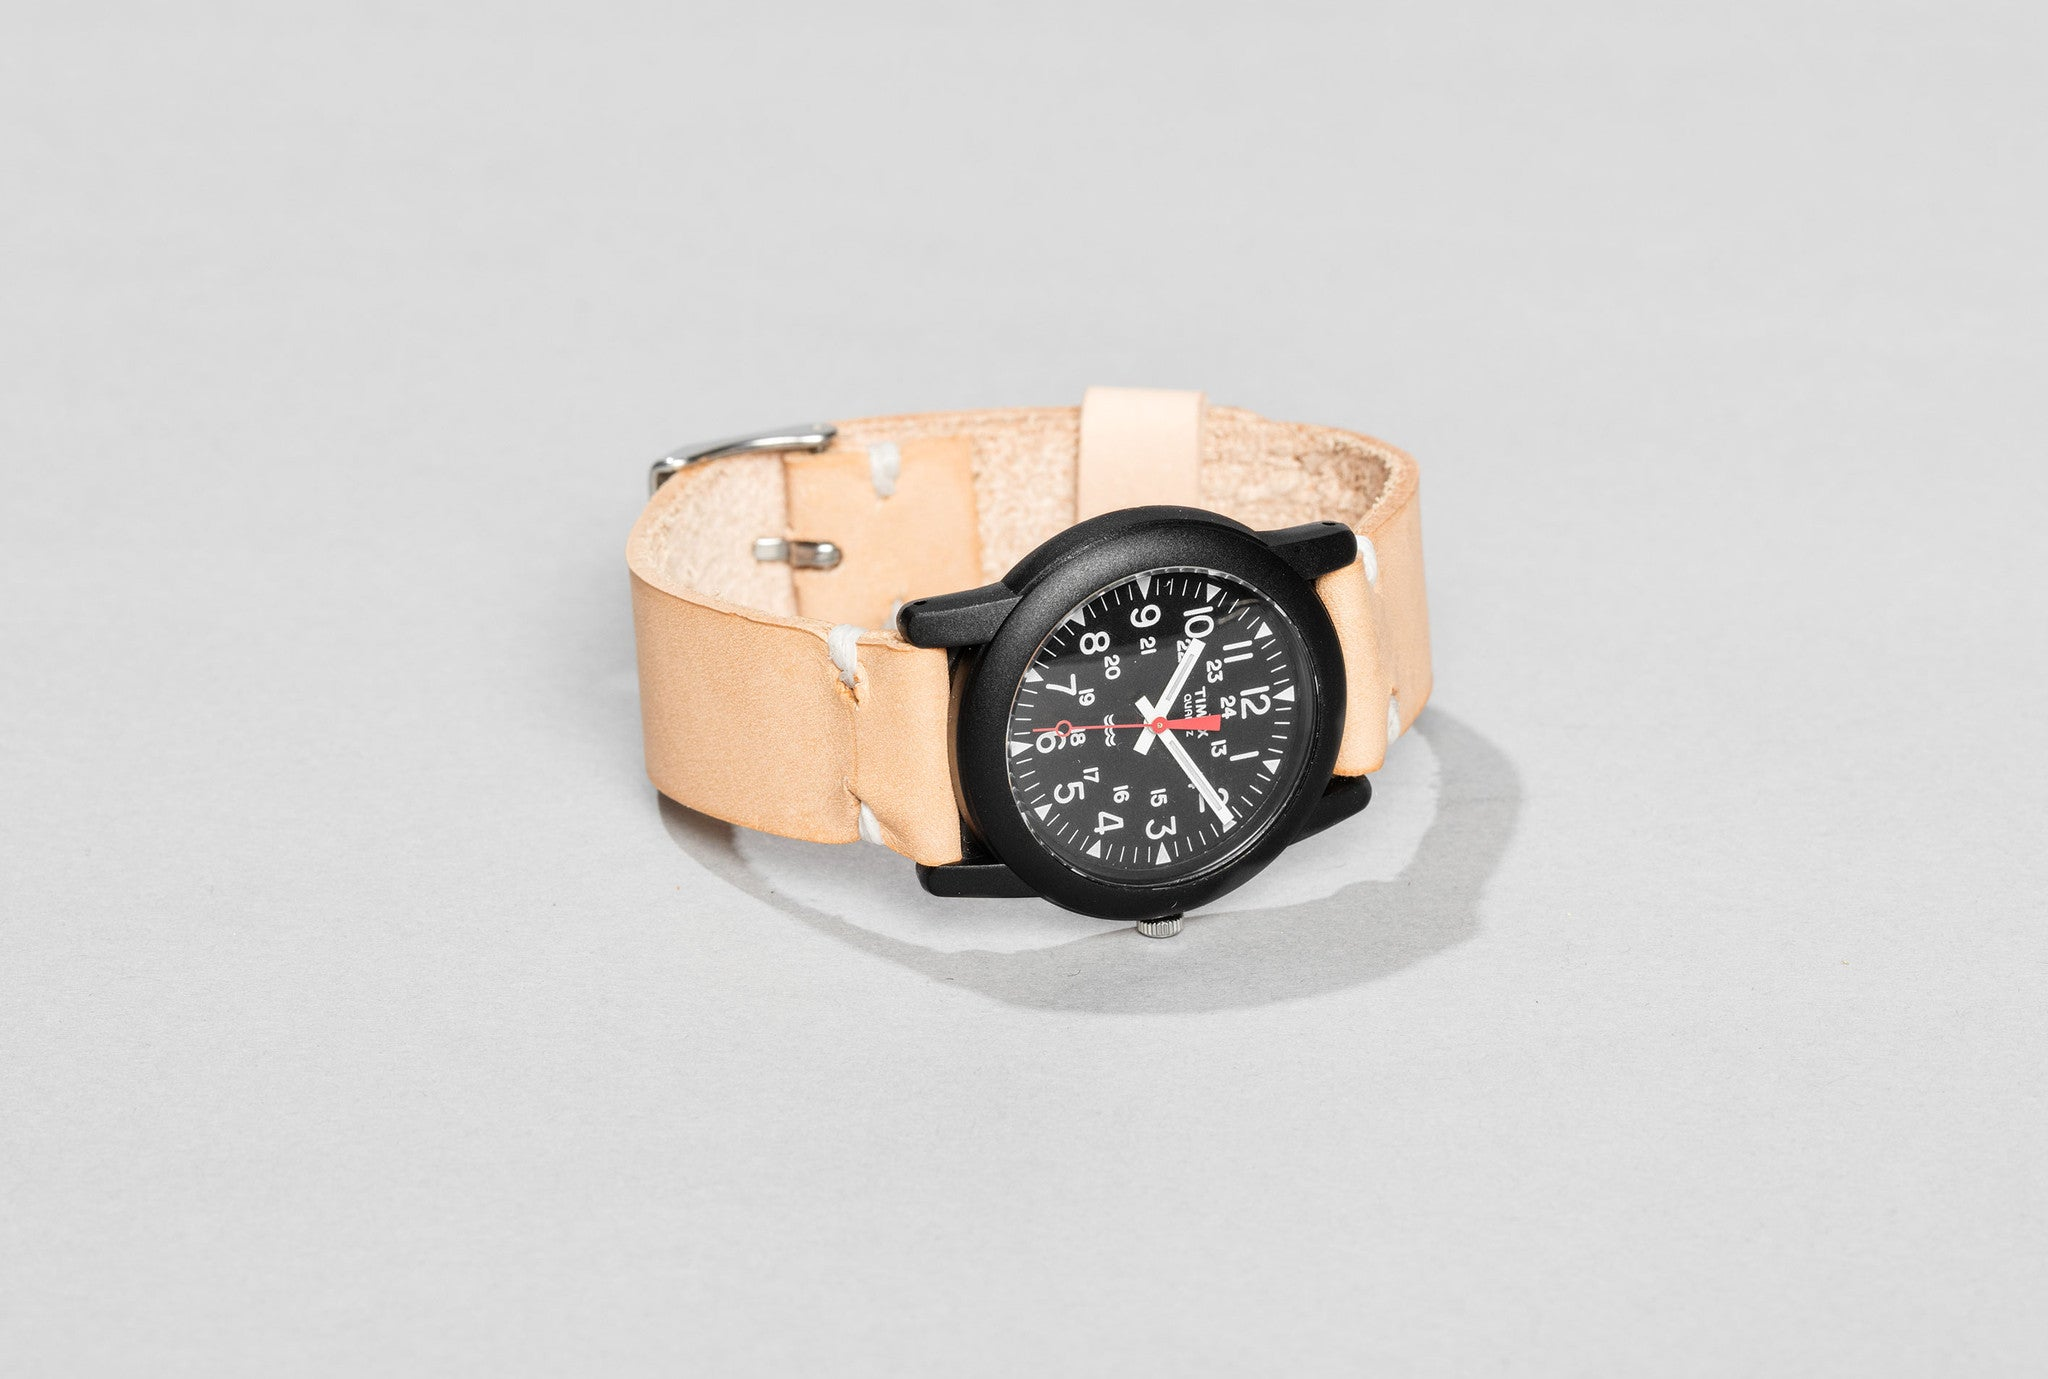 Timex Camper Watch with Buckland band